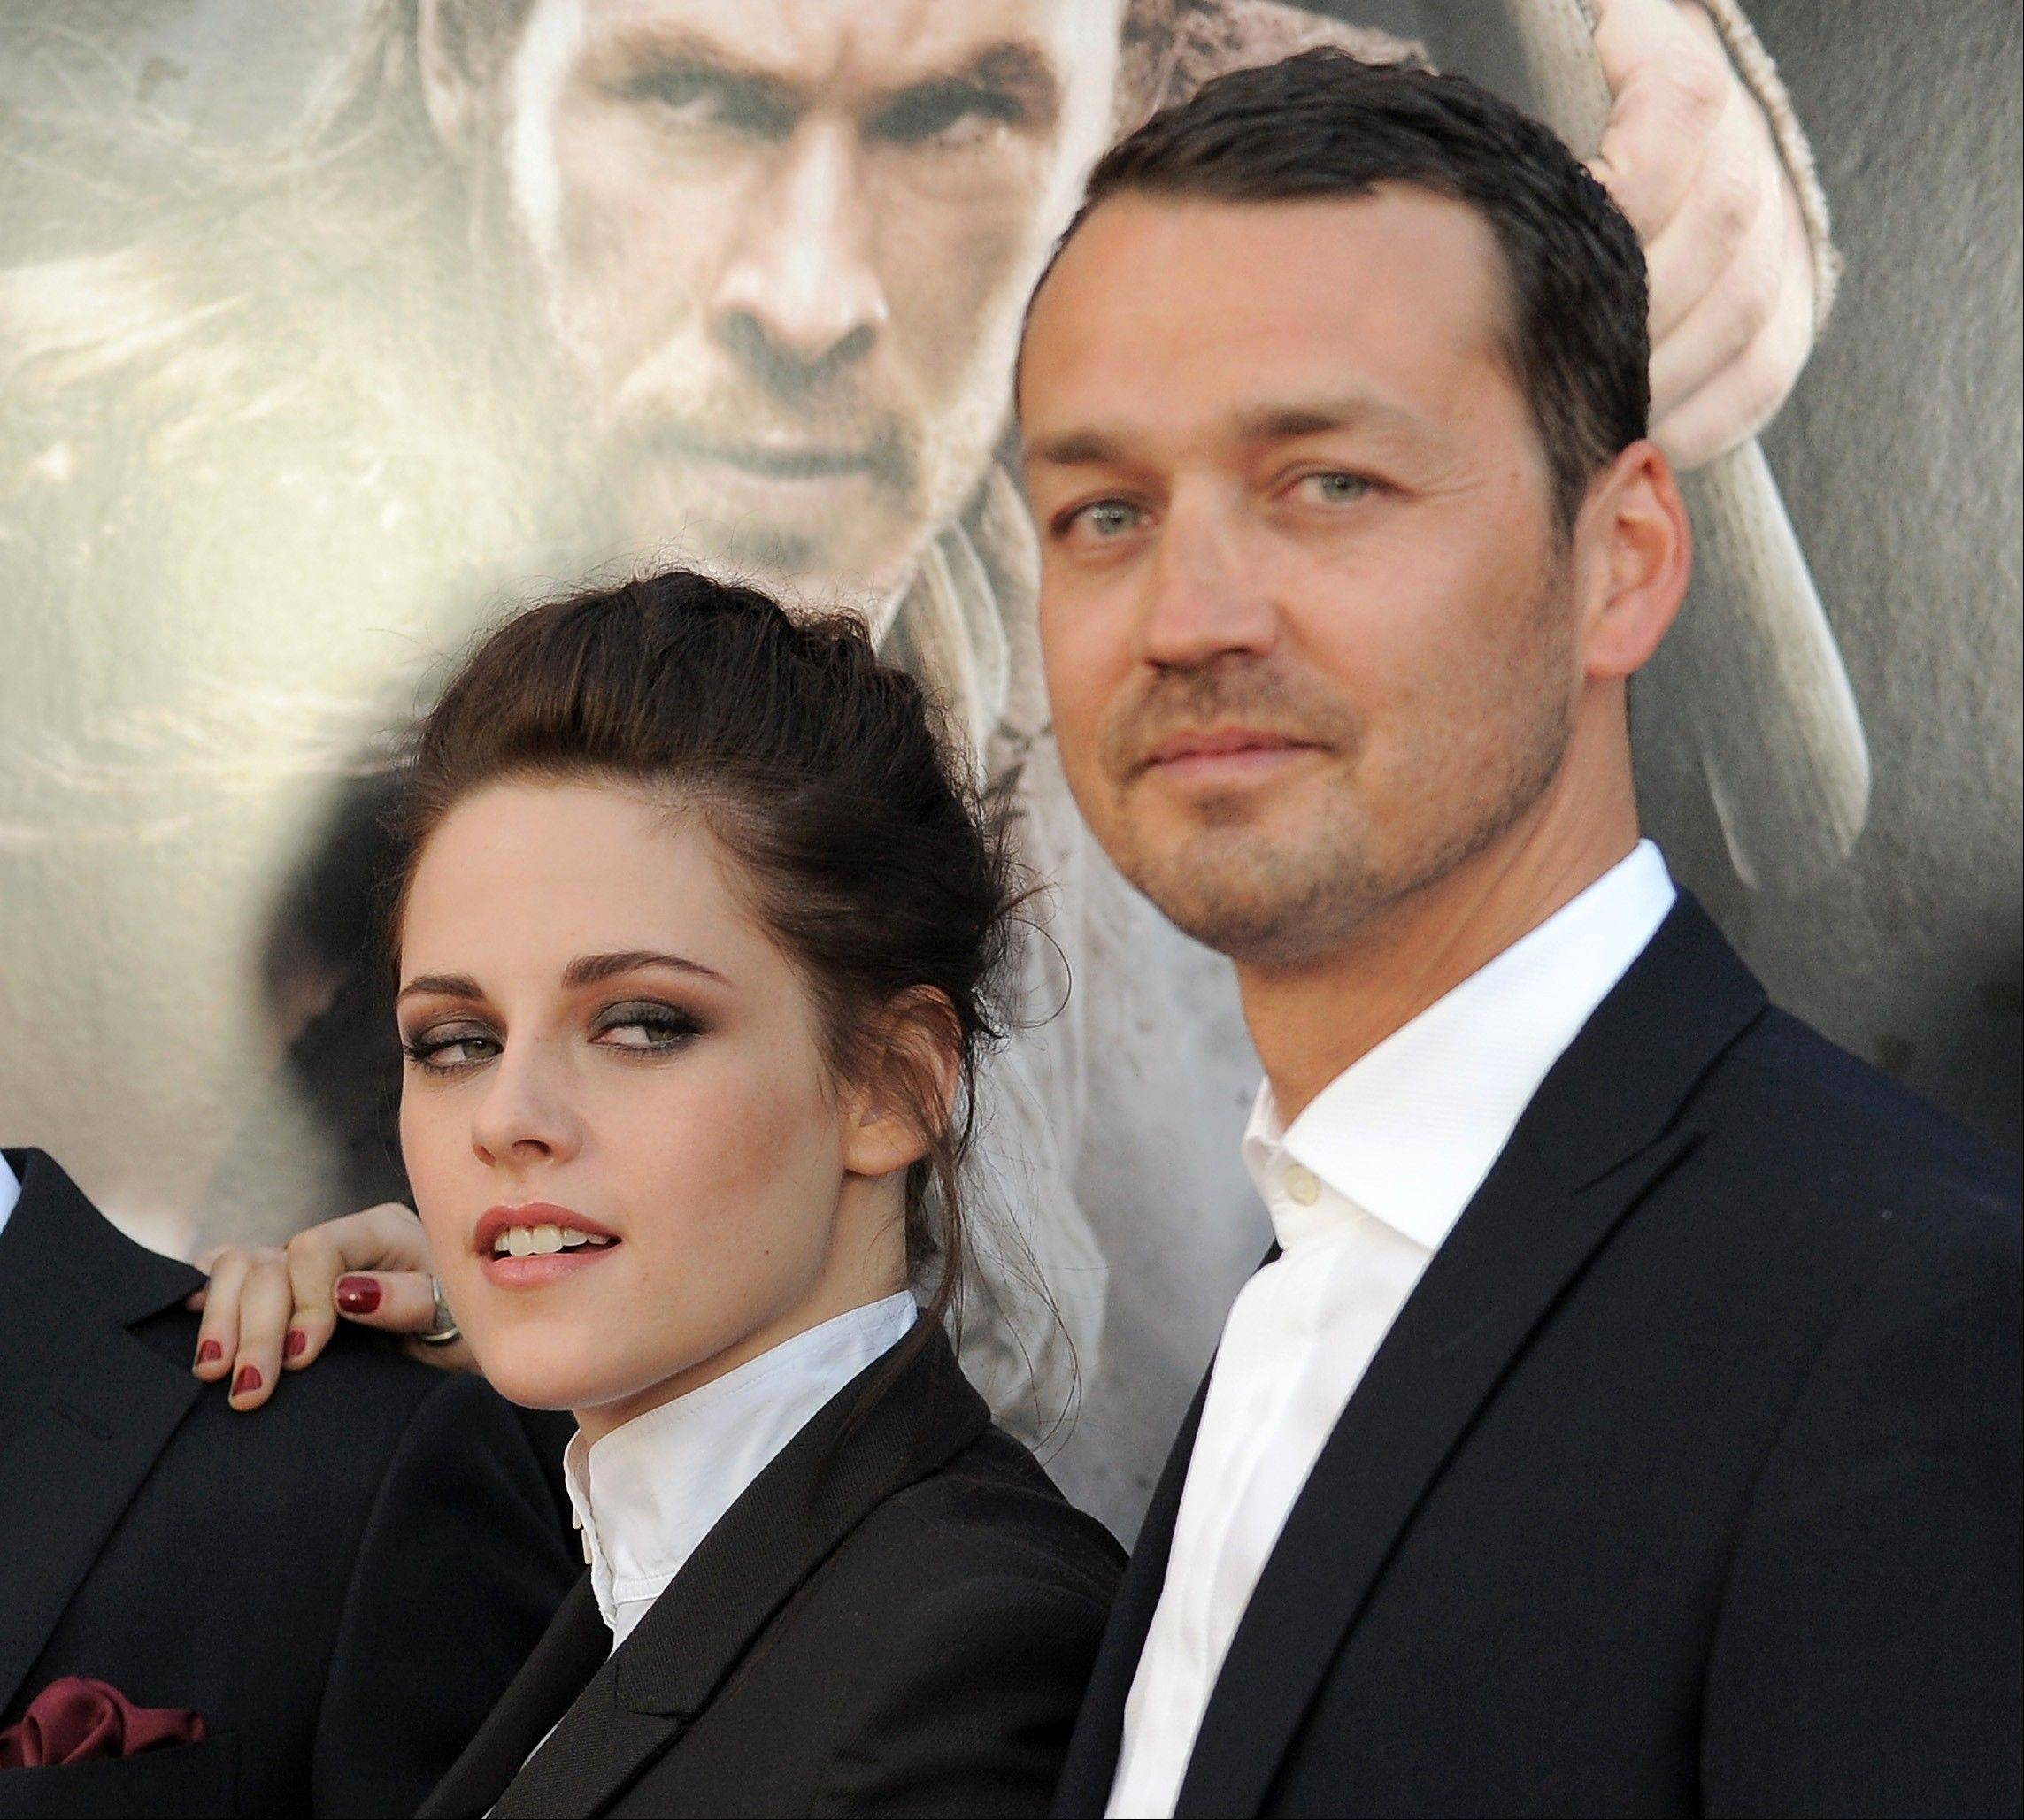 Actress Kristen Stewart and director Rupert Sanders apologized publicly to their loved ones following reports of infidelity.